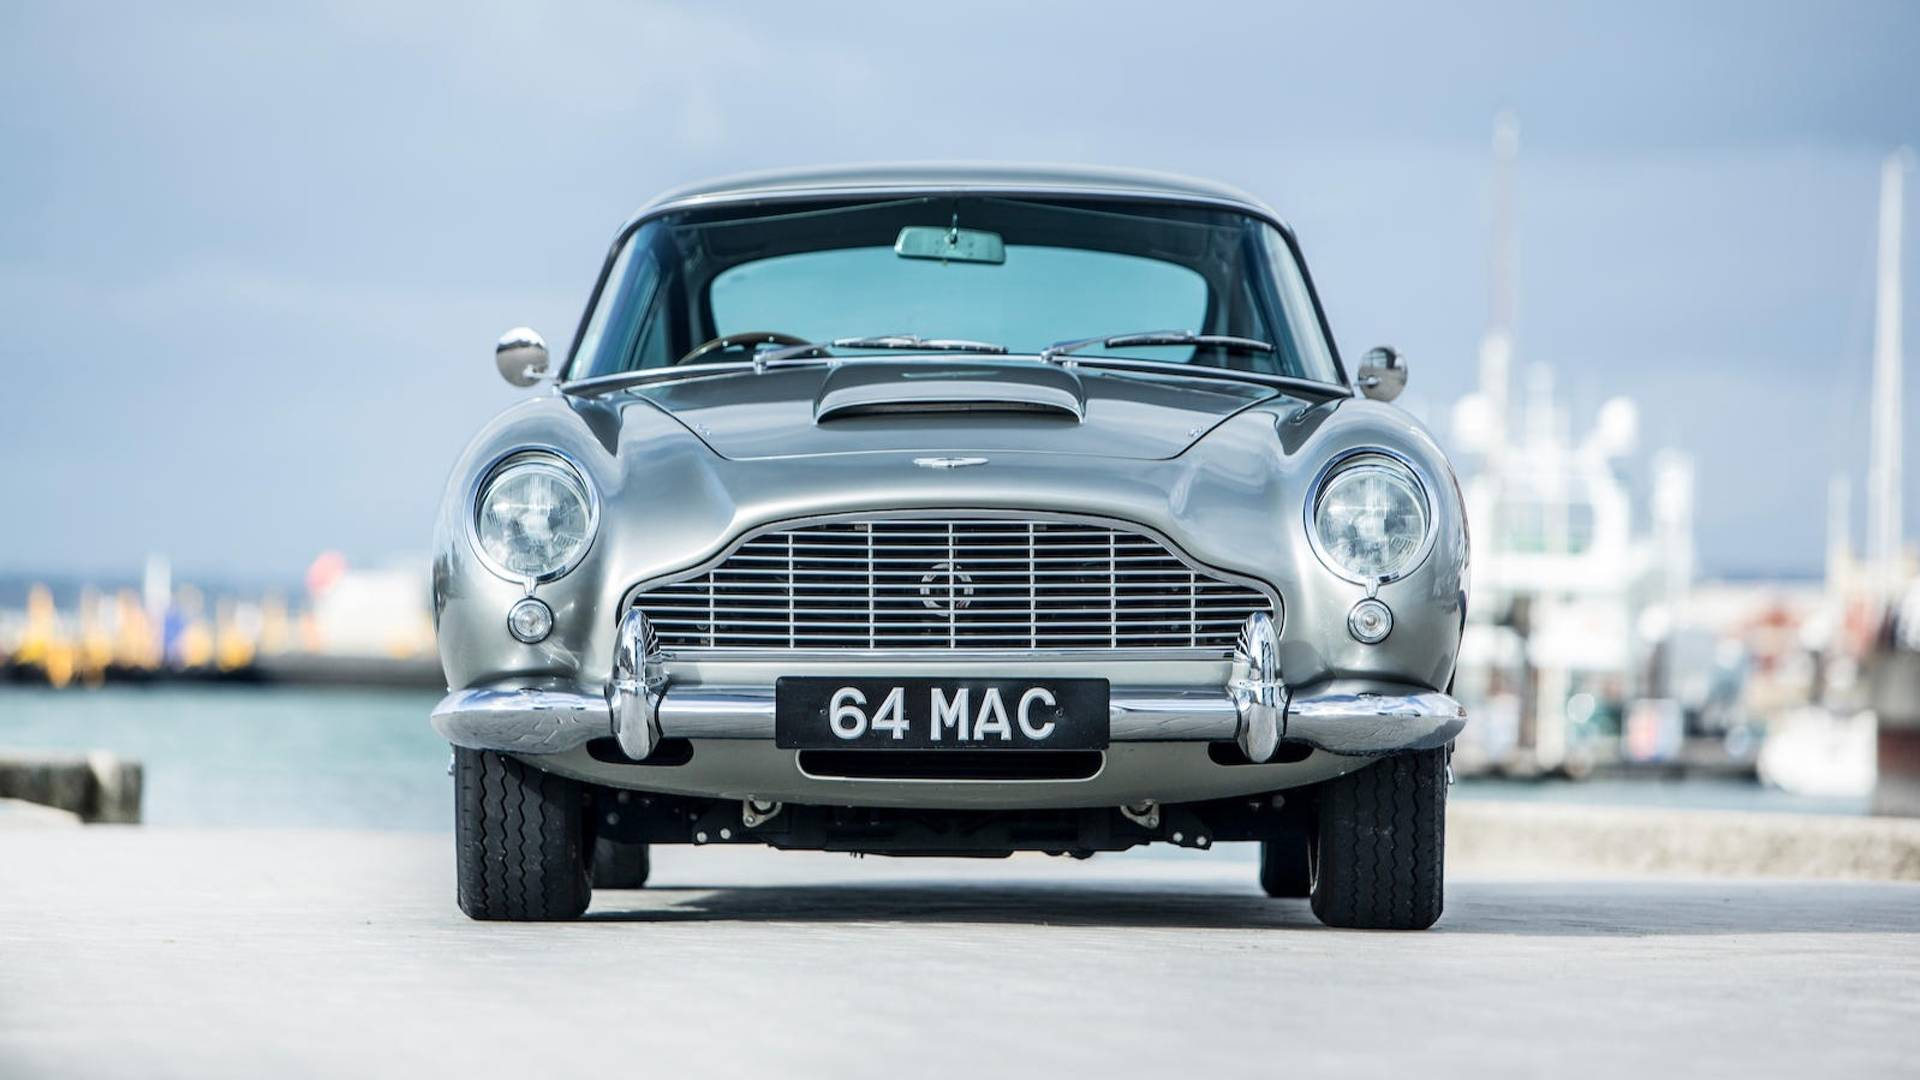 Aston Martin Db5 Bought By Paul Mccartney Gets 1 82m At Auction